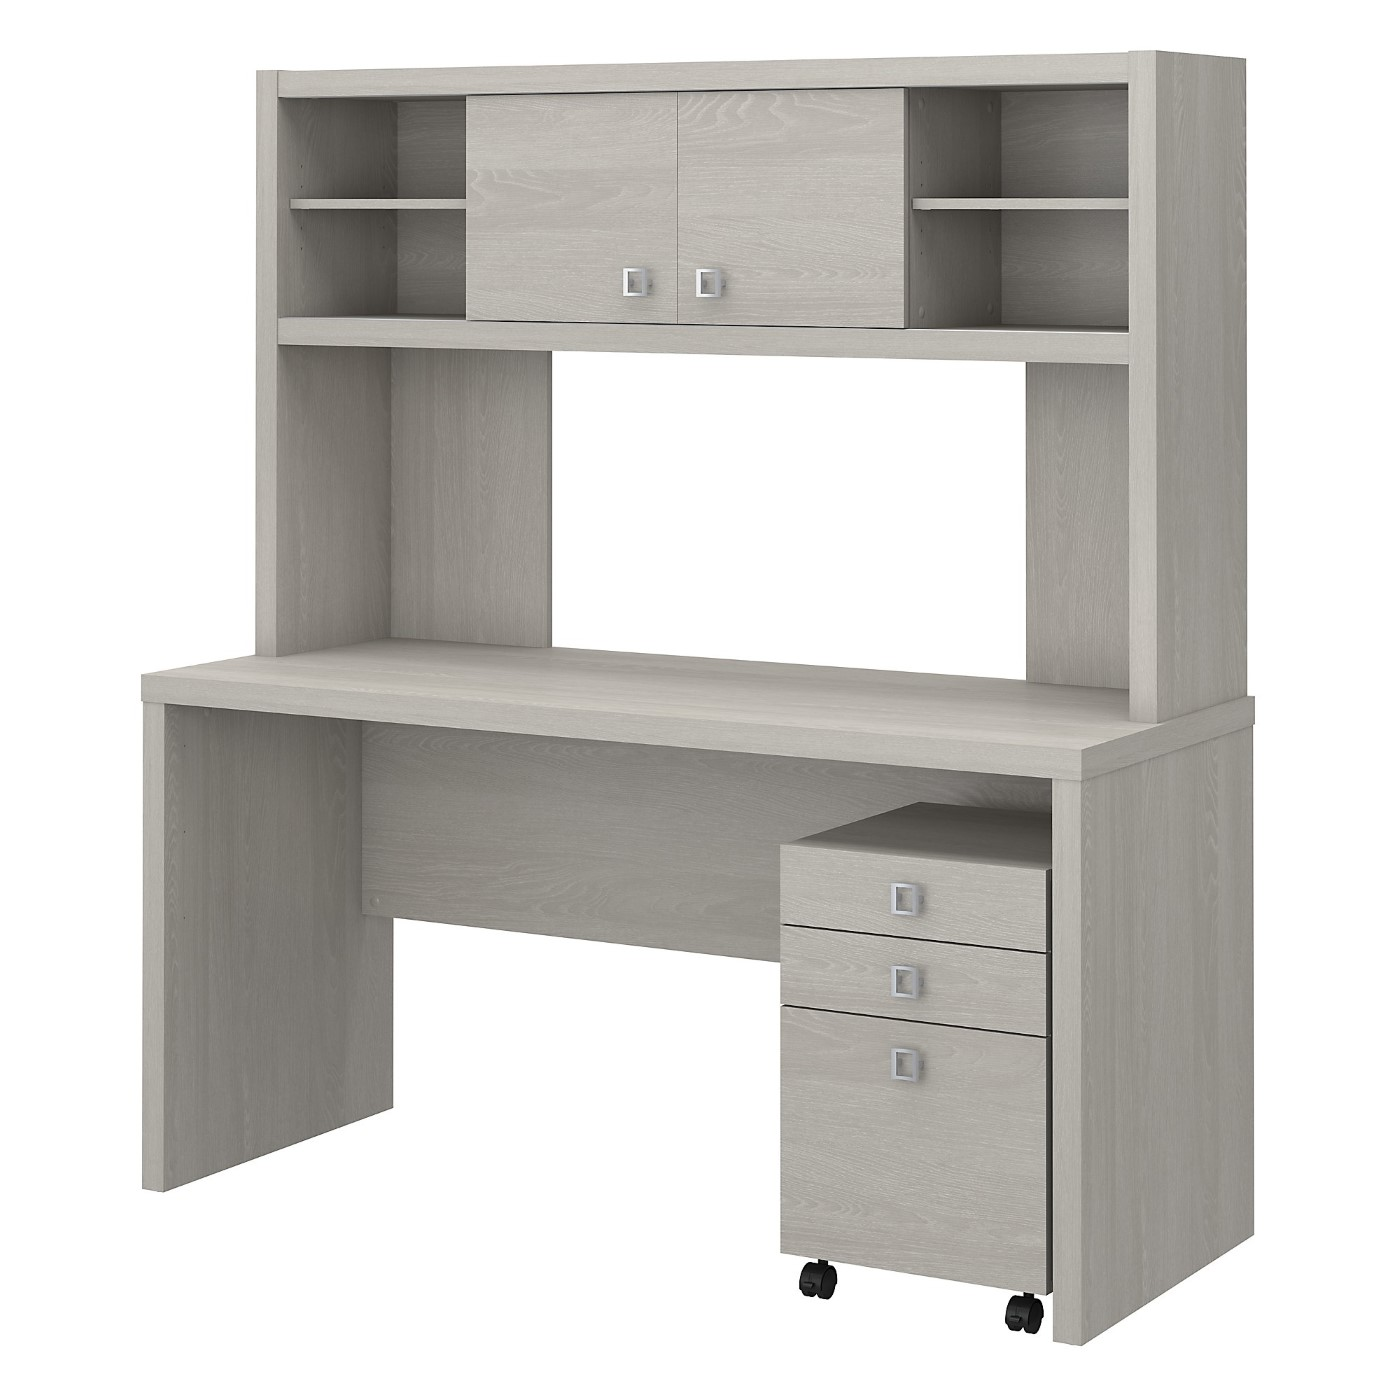 The kathy ireland� Echo Credenza Desk with Hutch and Mobile File Cabinet is Sustainable Eco Friendly Furniture. Includes Free Shipping! 30H x 72L x 72W.